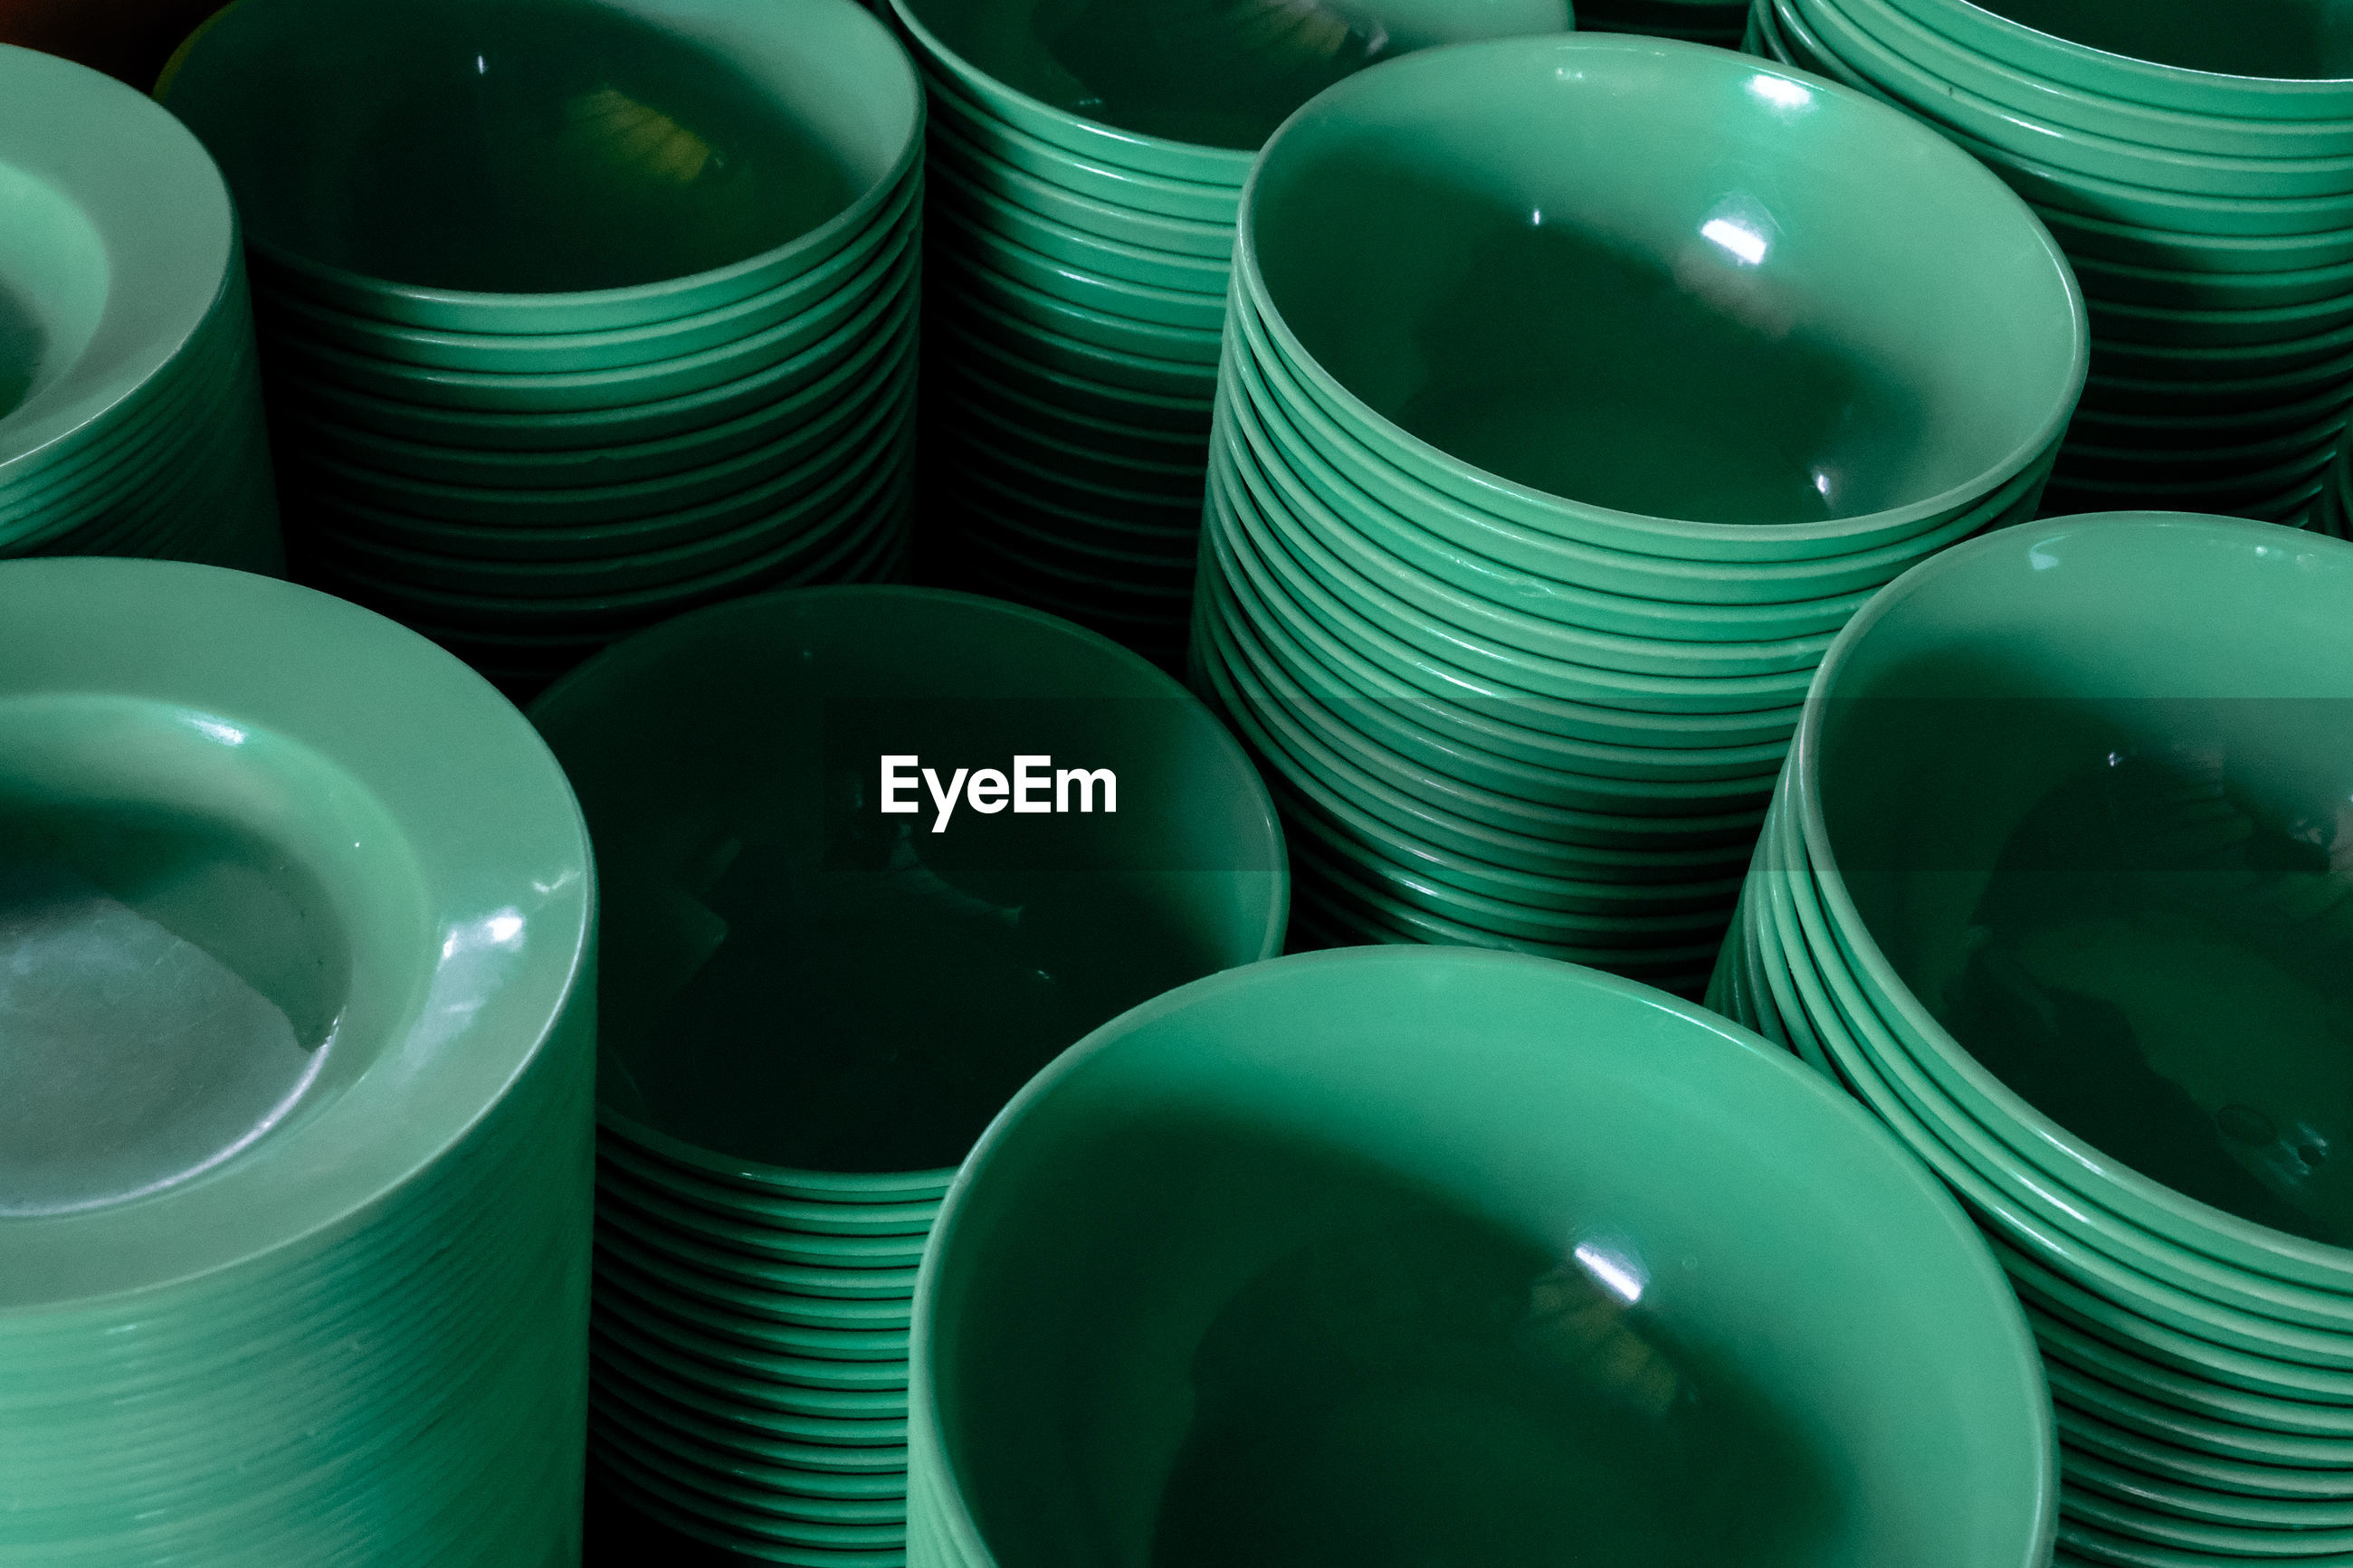 A stack of green plastic bowl